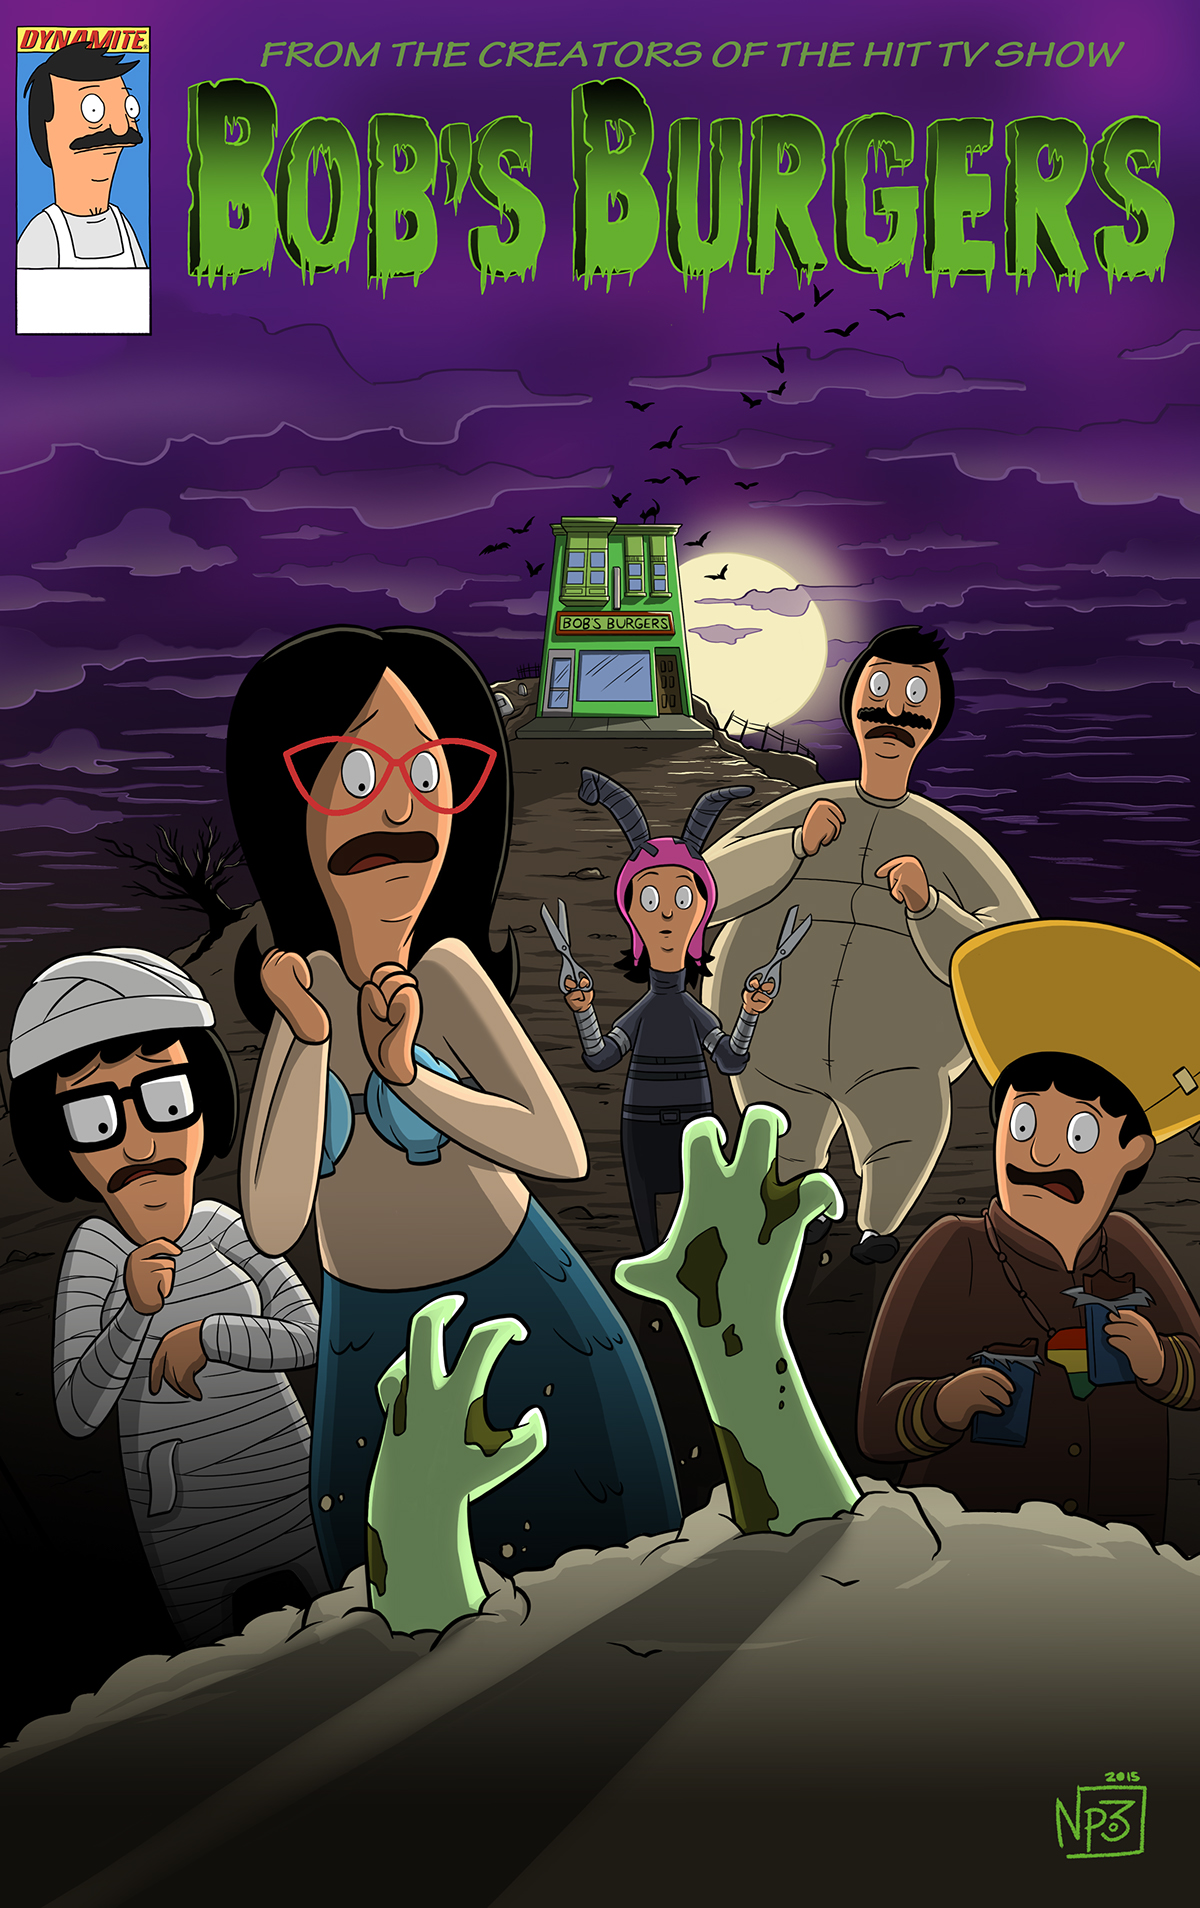 bobs burgers halloween comic variant cover by me